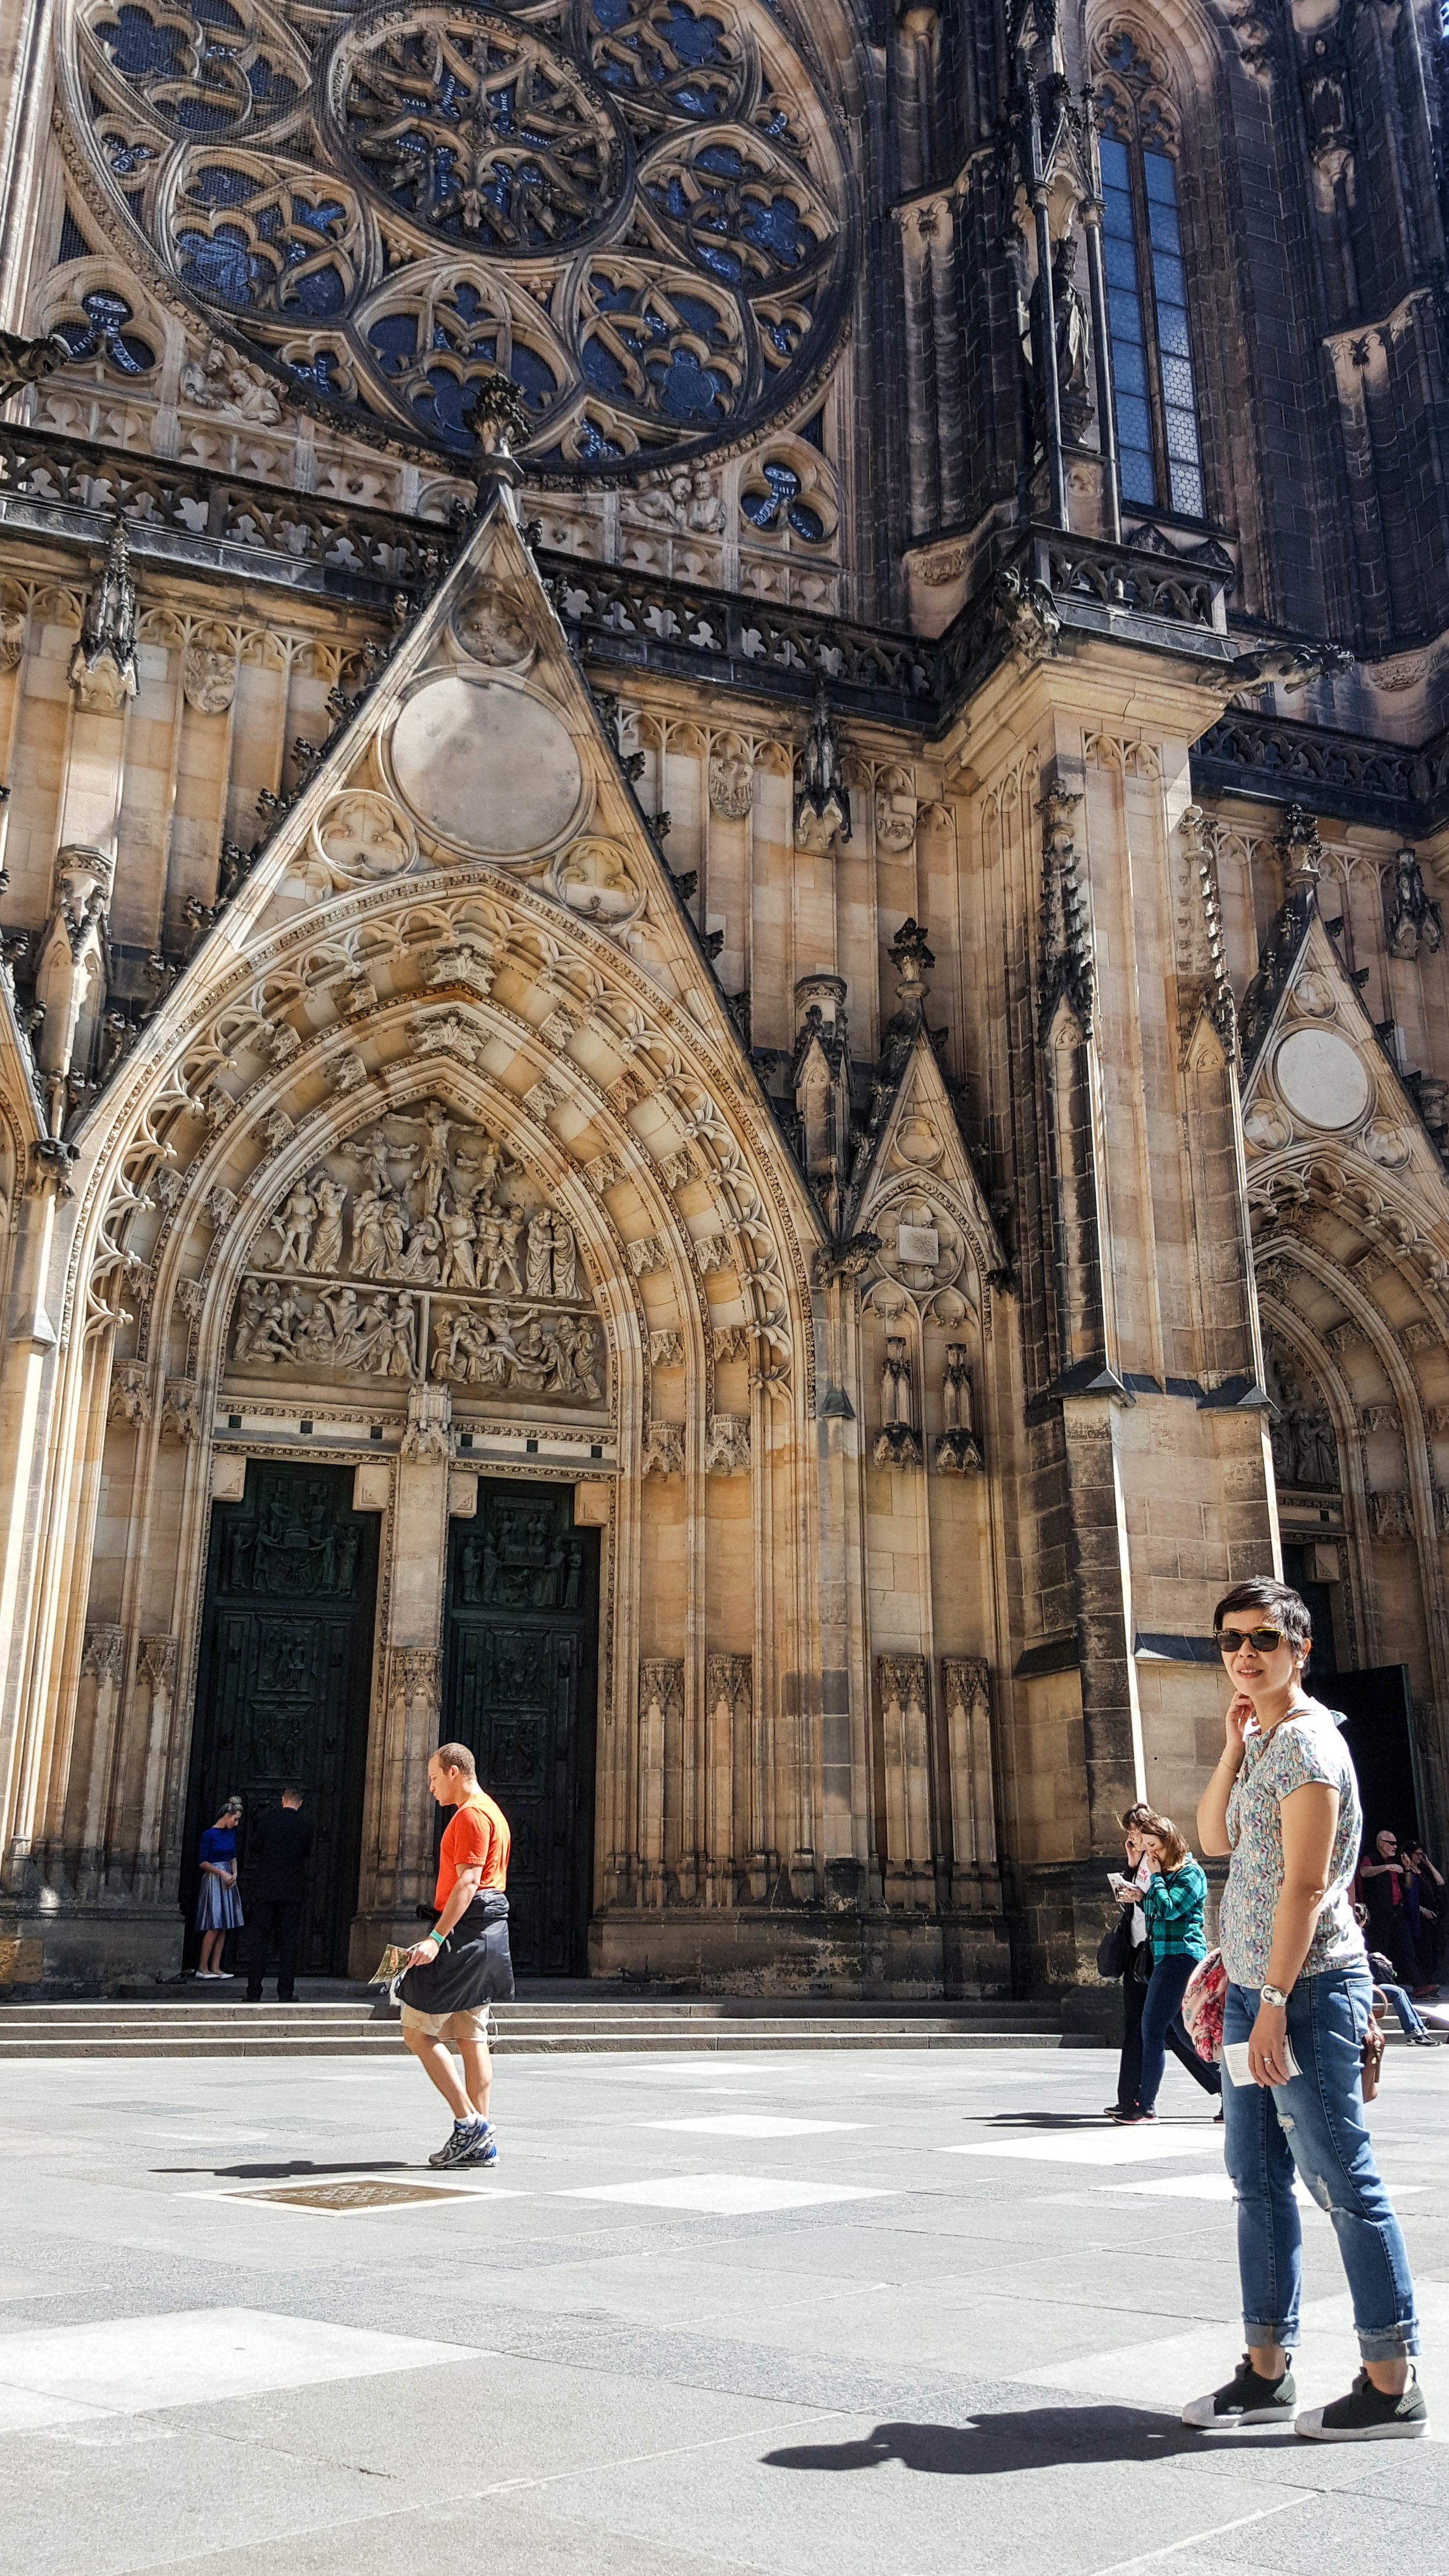 St. Vitus Cathedral in the Prague Castle complex